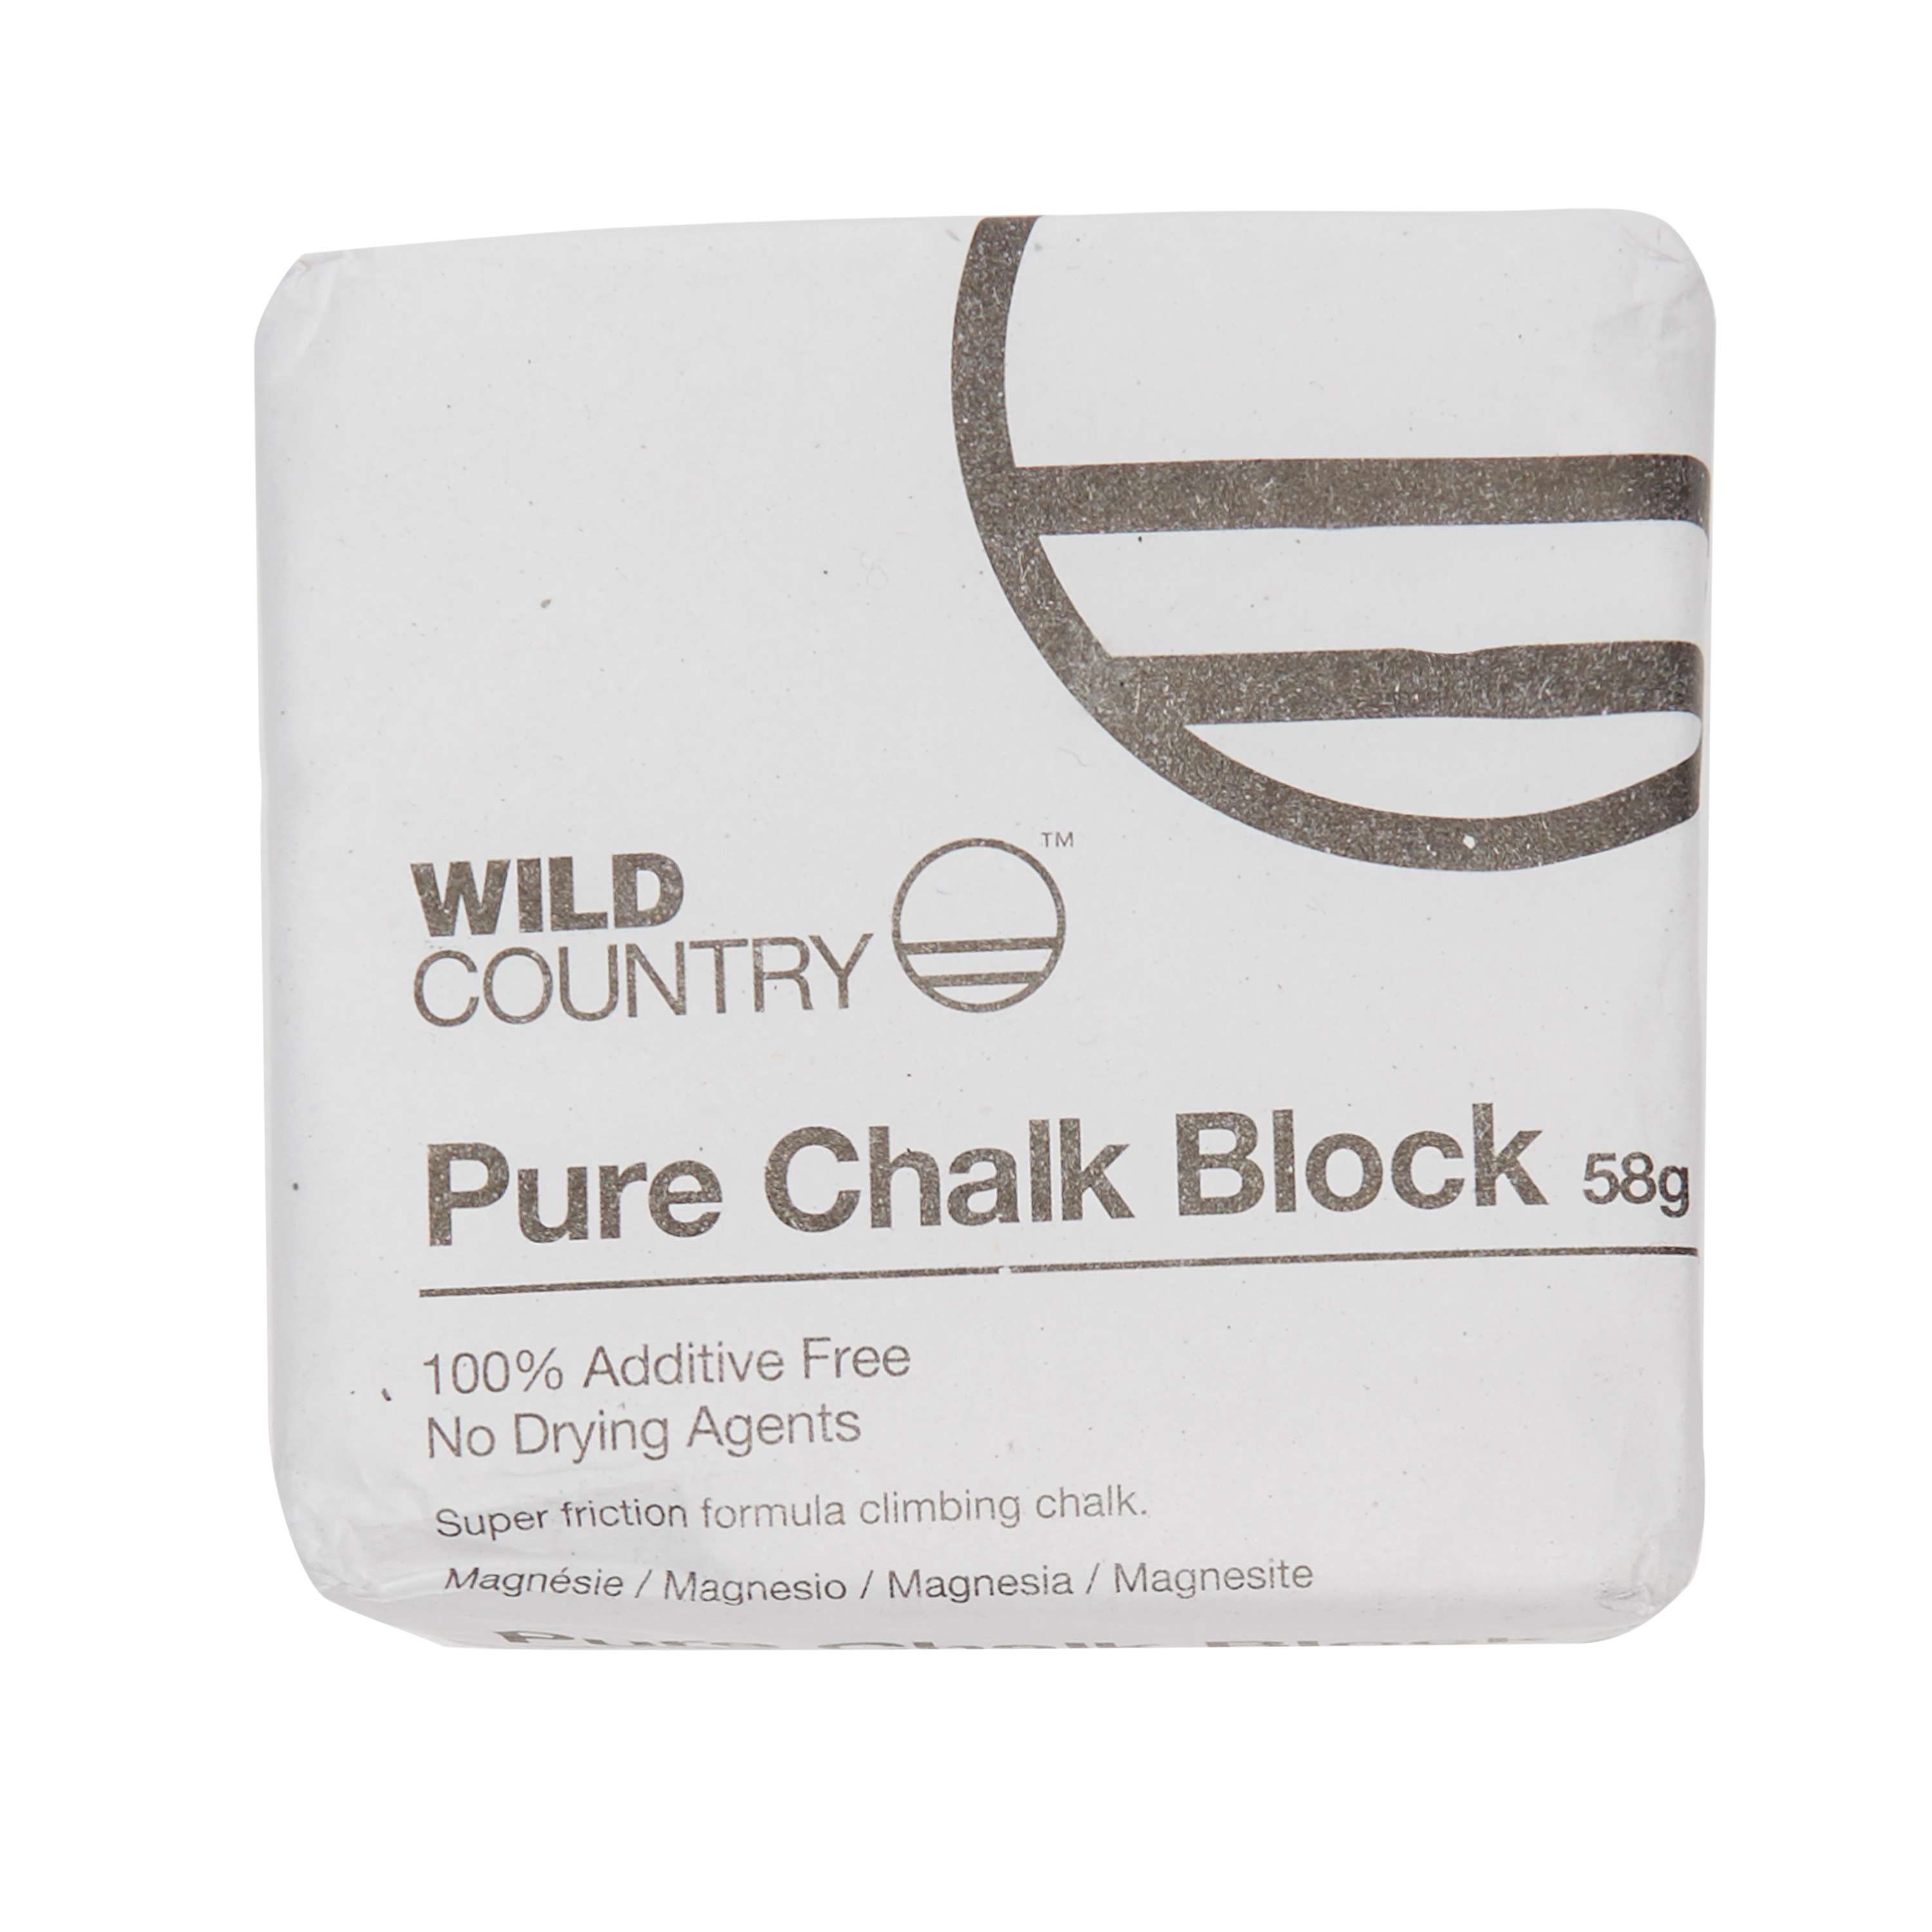 WILD COUNTRY Pure Chalk Block